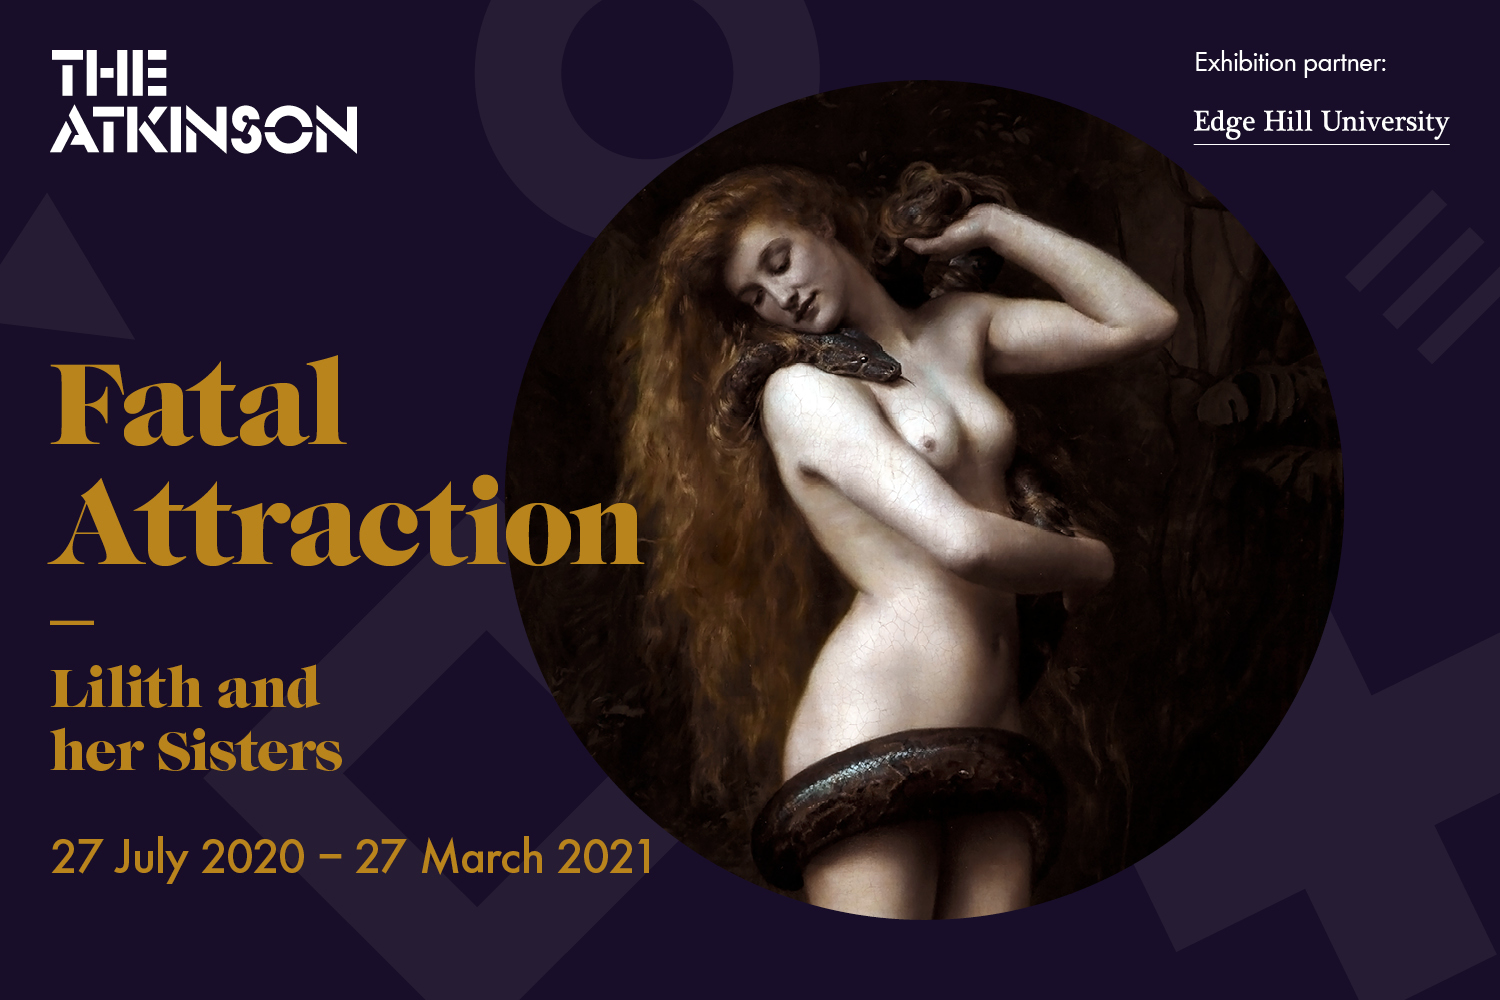 The Atkinson: Fatal Attraction: Lilith and her Sisters